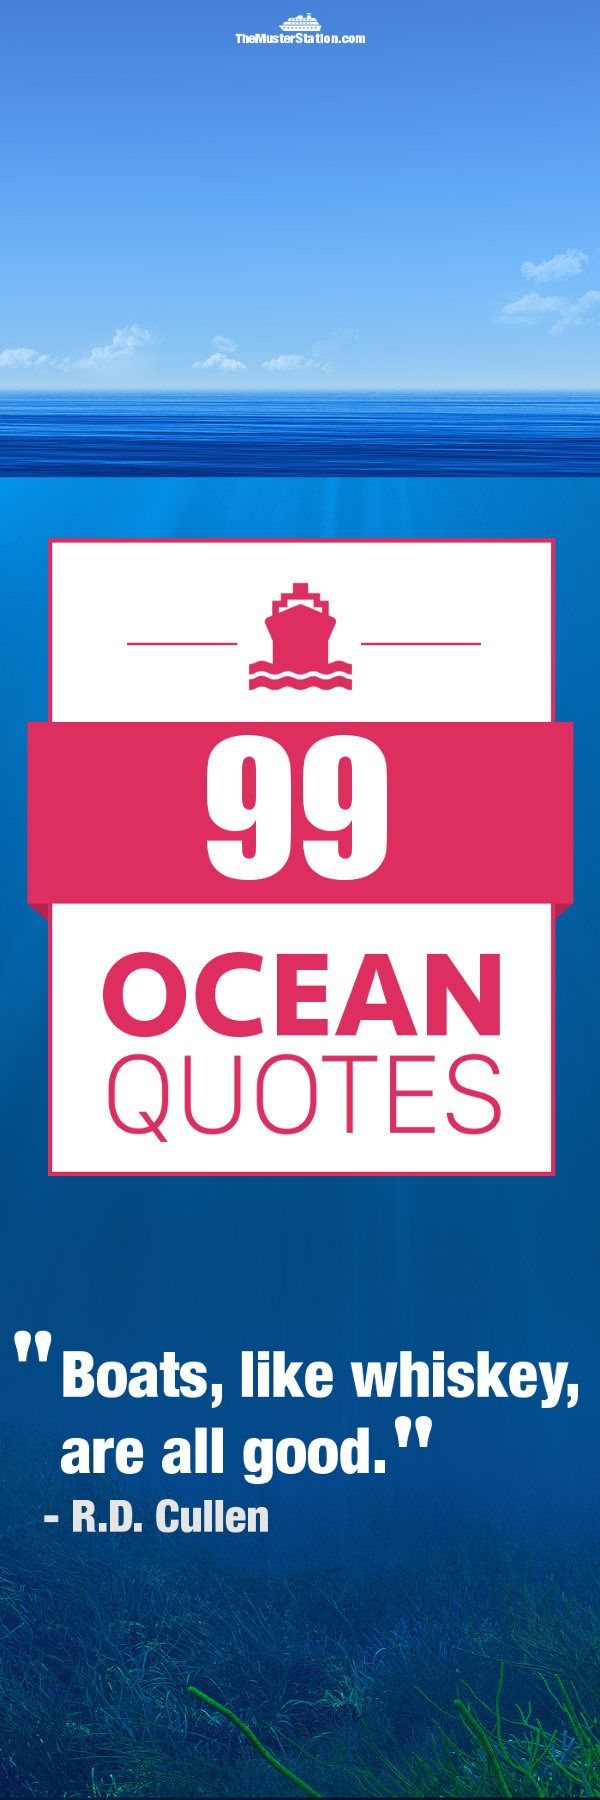 99 Ocean Quotes, Nautical Sayings and Sailing Axioms for ocean lovers!